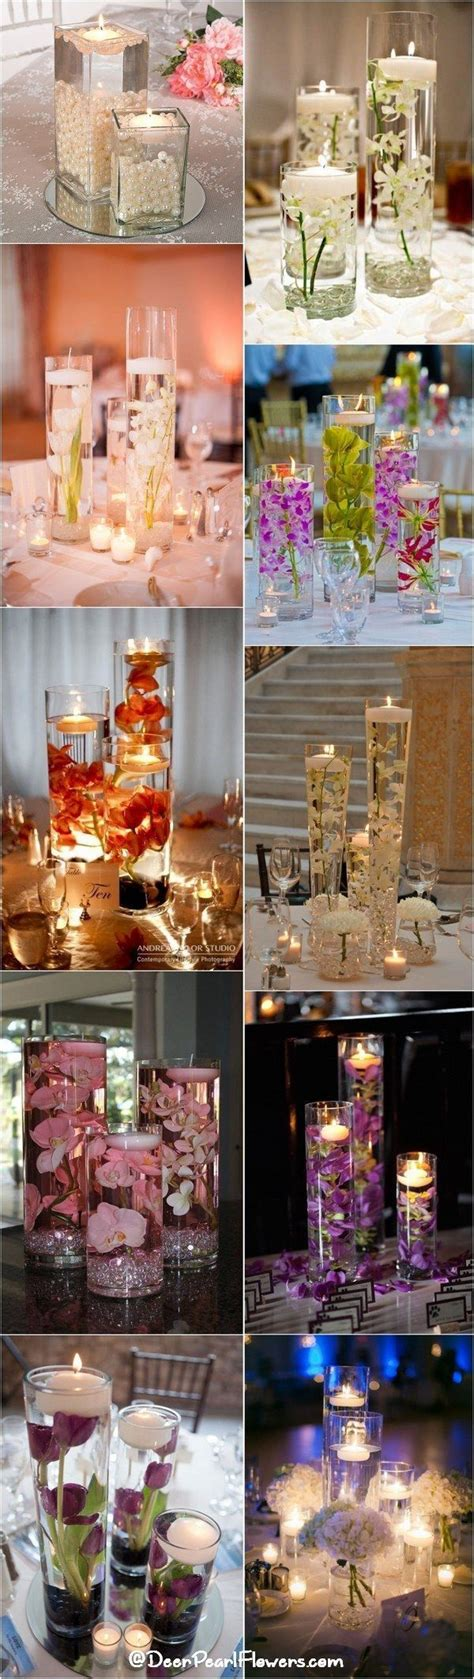 centerpieces on 1000 ideas about barn wedding centerpieces on